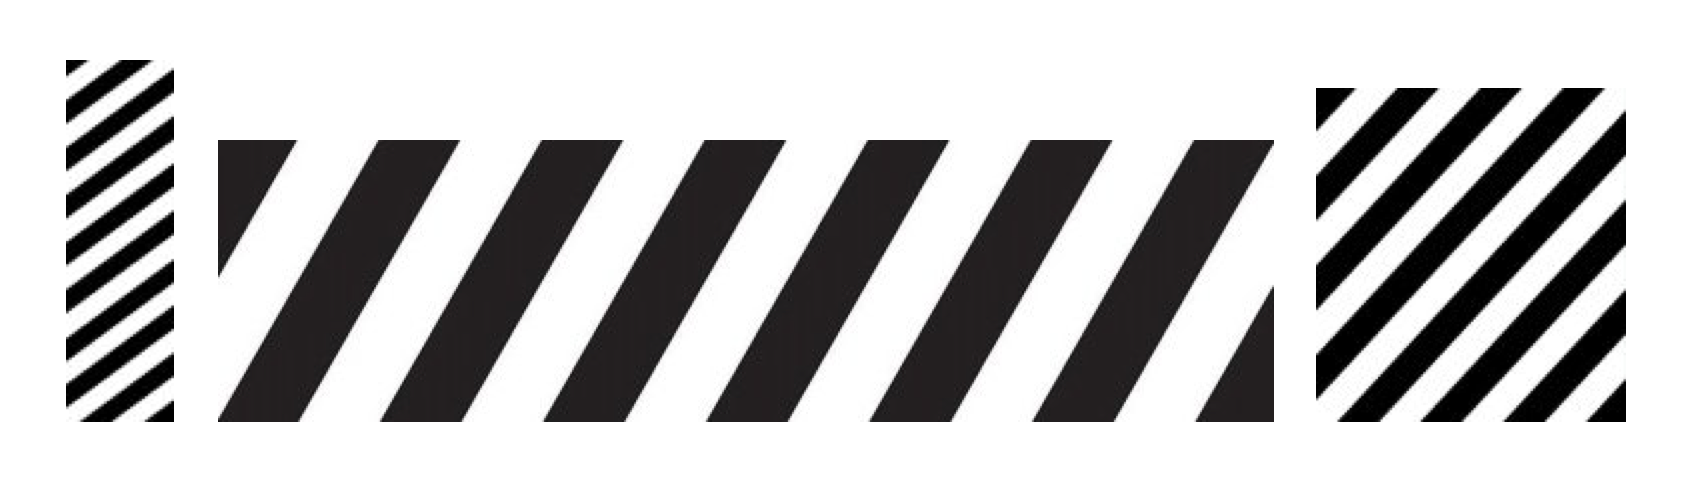 Abloh's three Off-White trademarks (images courtesy of USPTO)